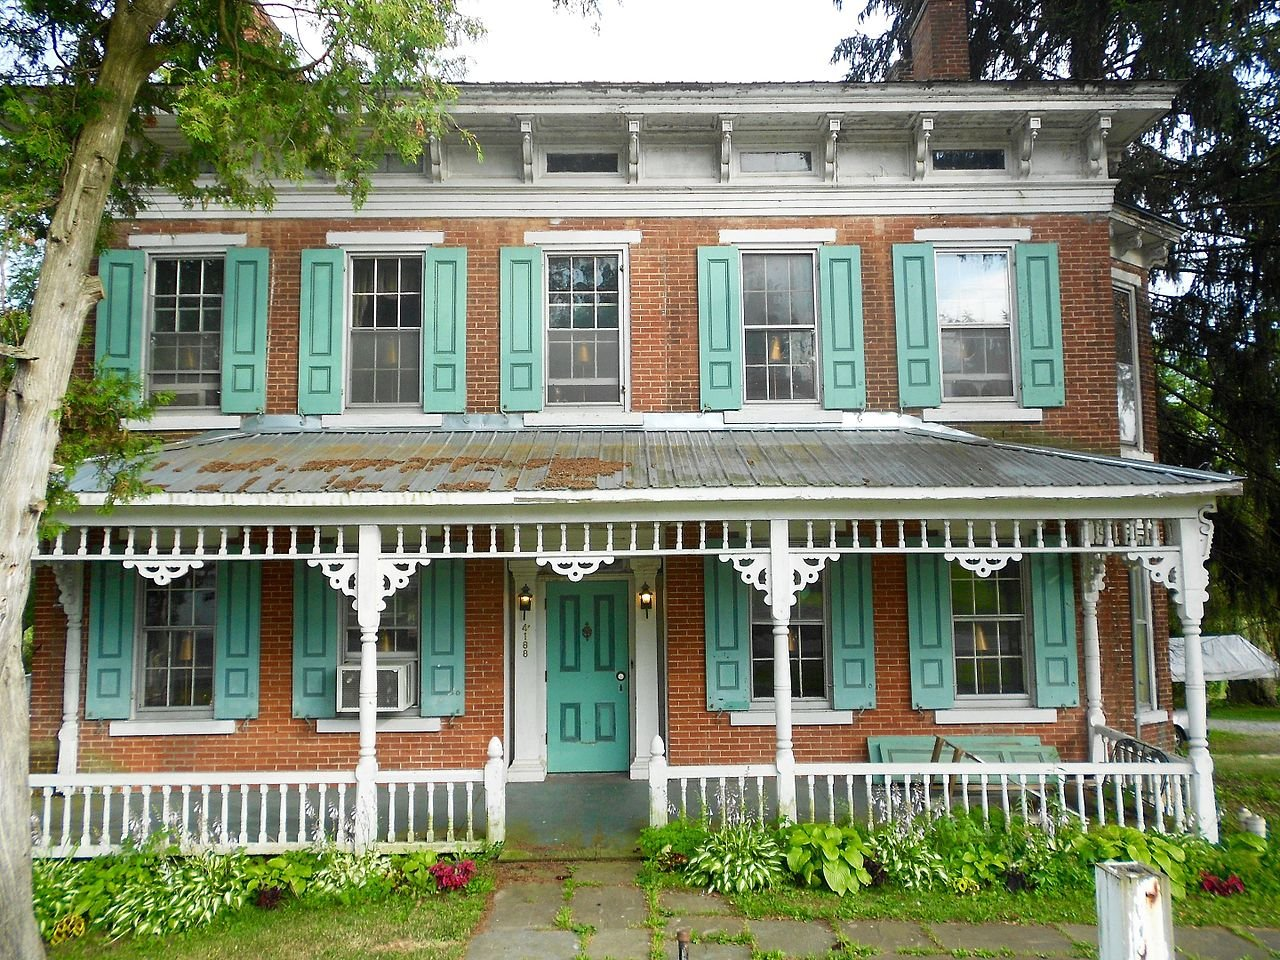 The Major Jared B. Fisher House was built in 1856 and is now home to a fine dining restaurant.